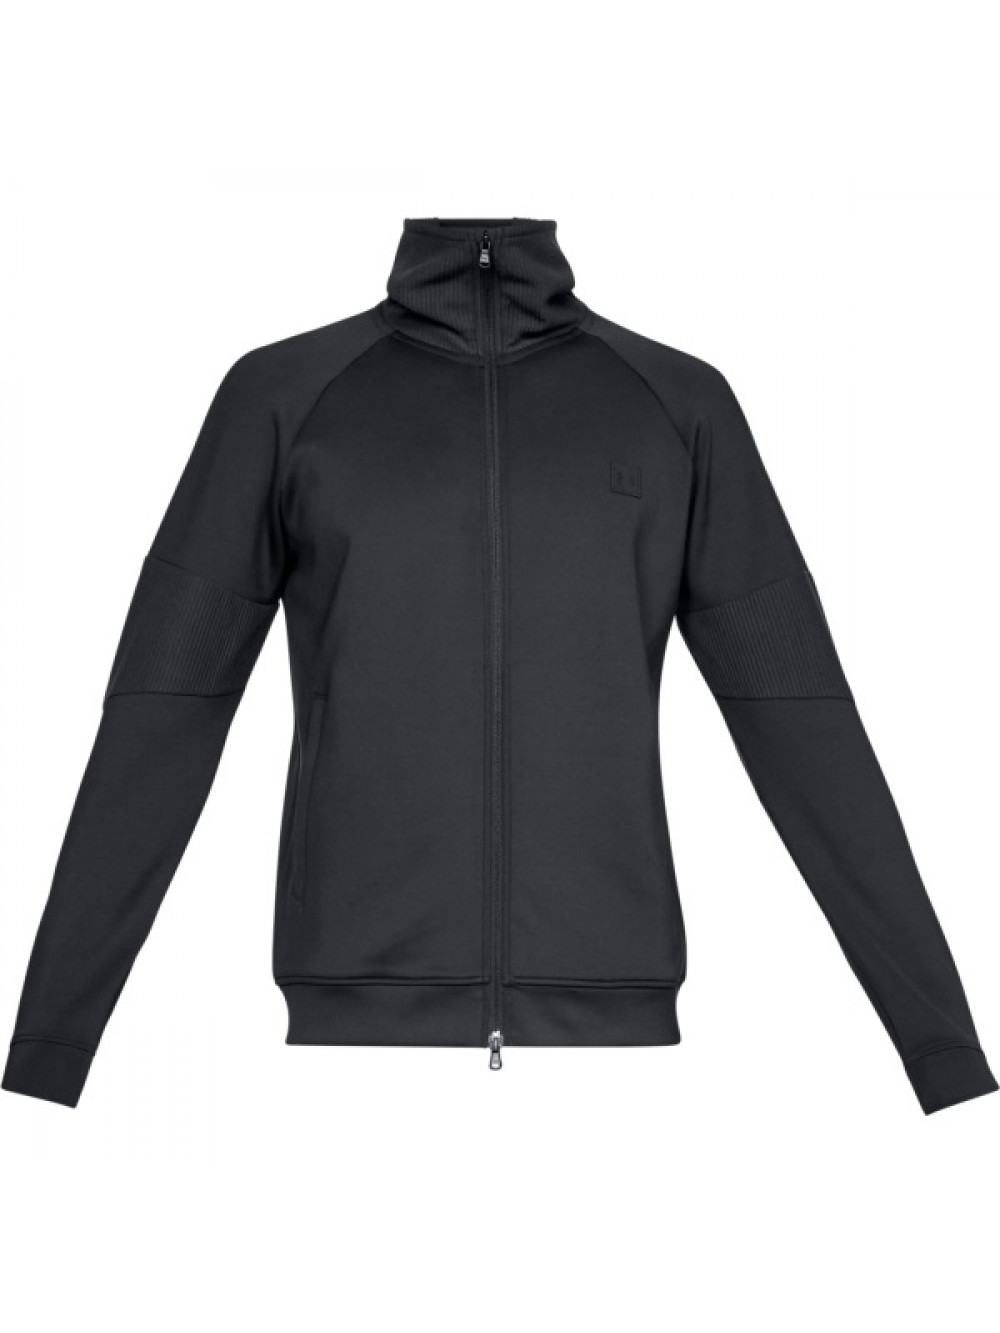 Herren Jacke Under Armour Perpetual Track Jacket Schwarz